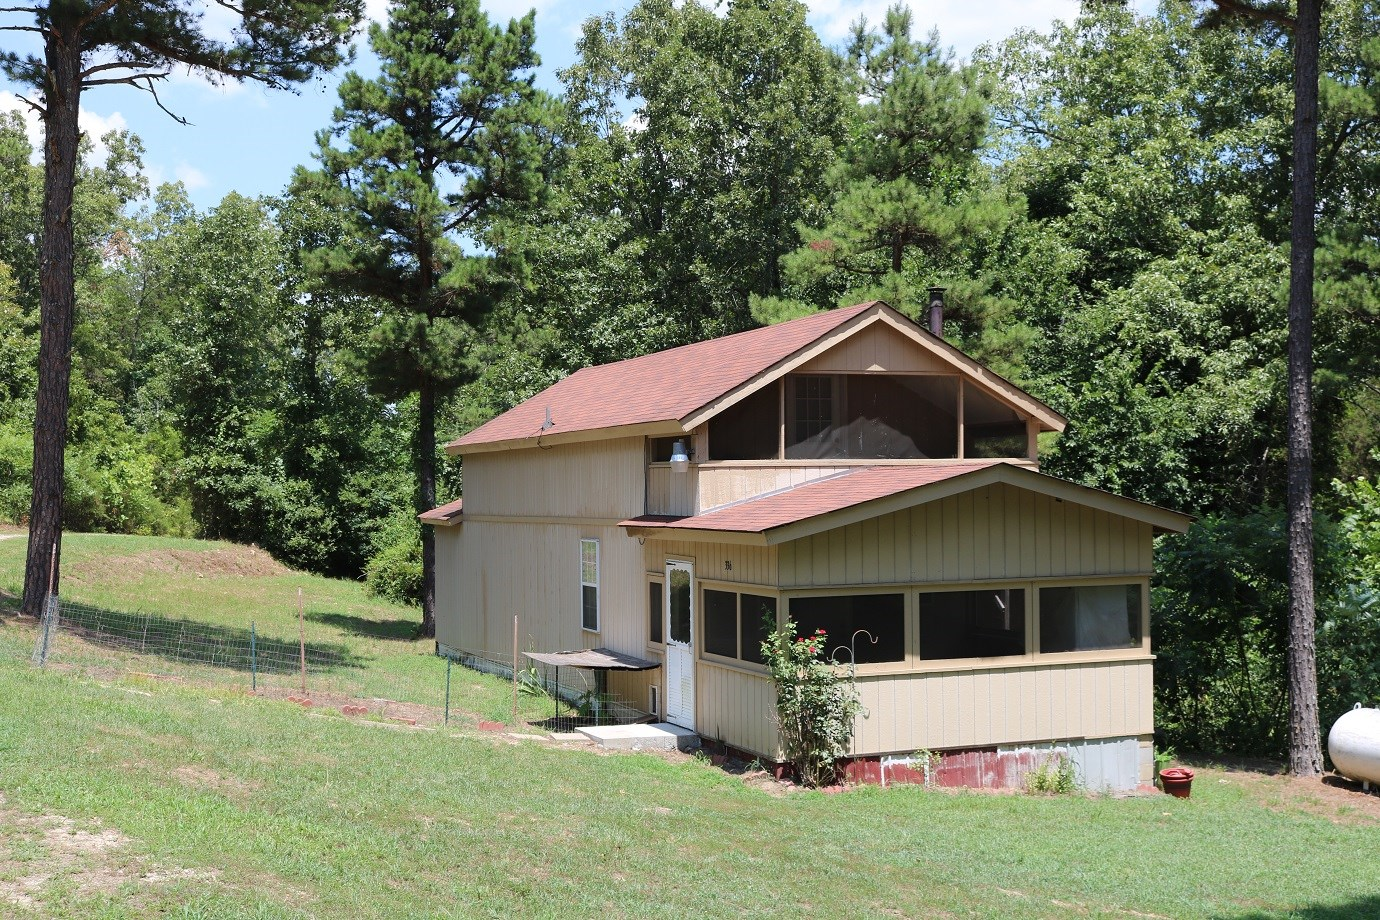 TWO HOMES IN ARKANSAS FOR SALE